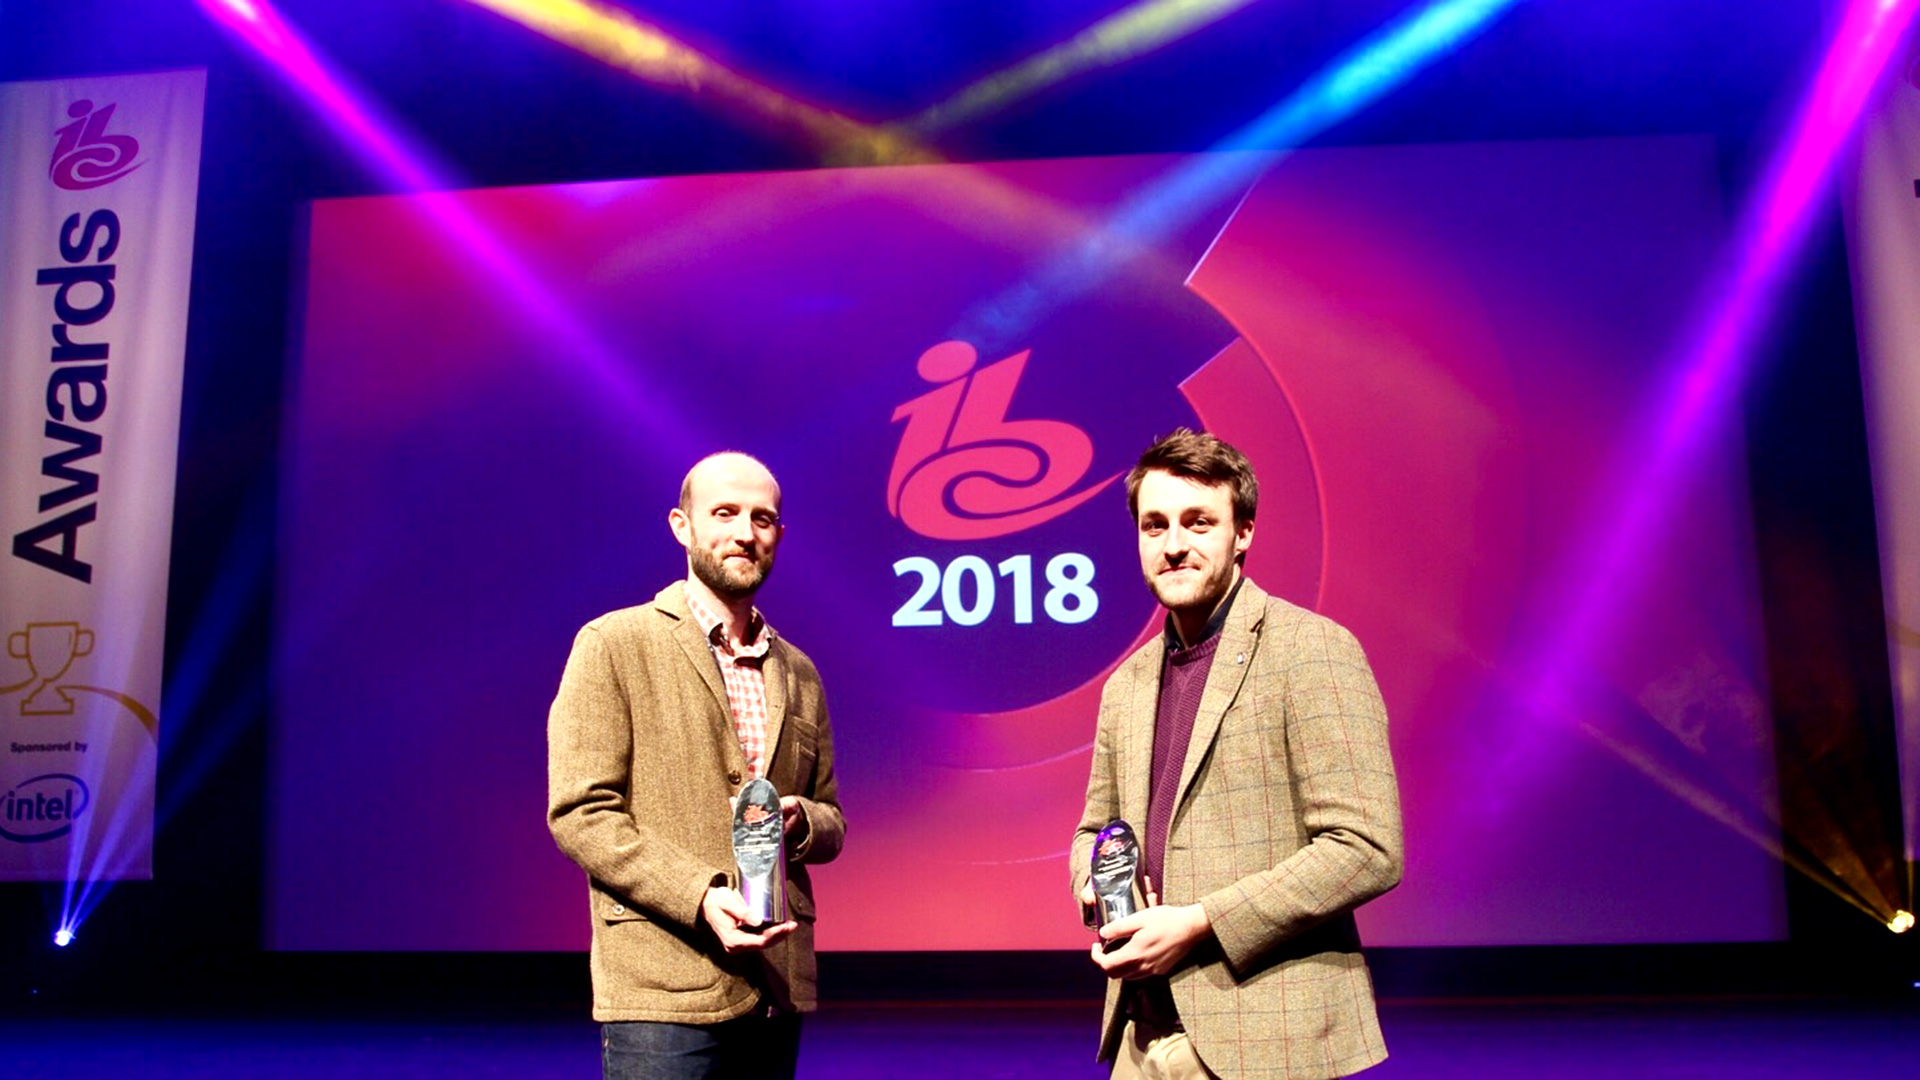 Craig Wright and David Johnston on stage at the IBC Awards with their trophies.